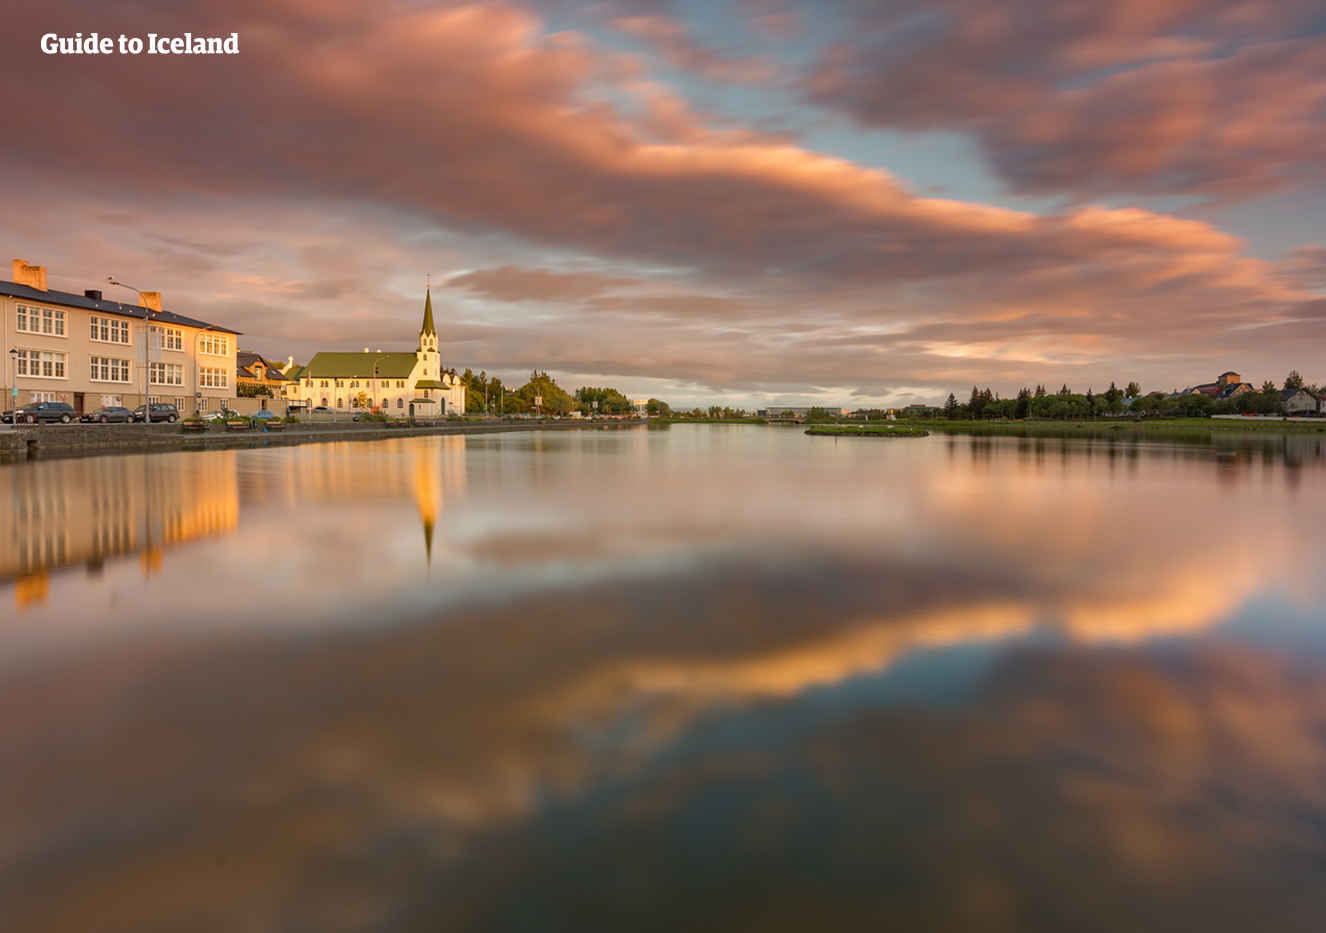 Reykjavik is a beautiful city, with Tjornin Pond at its centre.